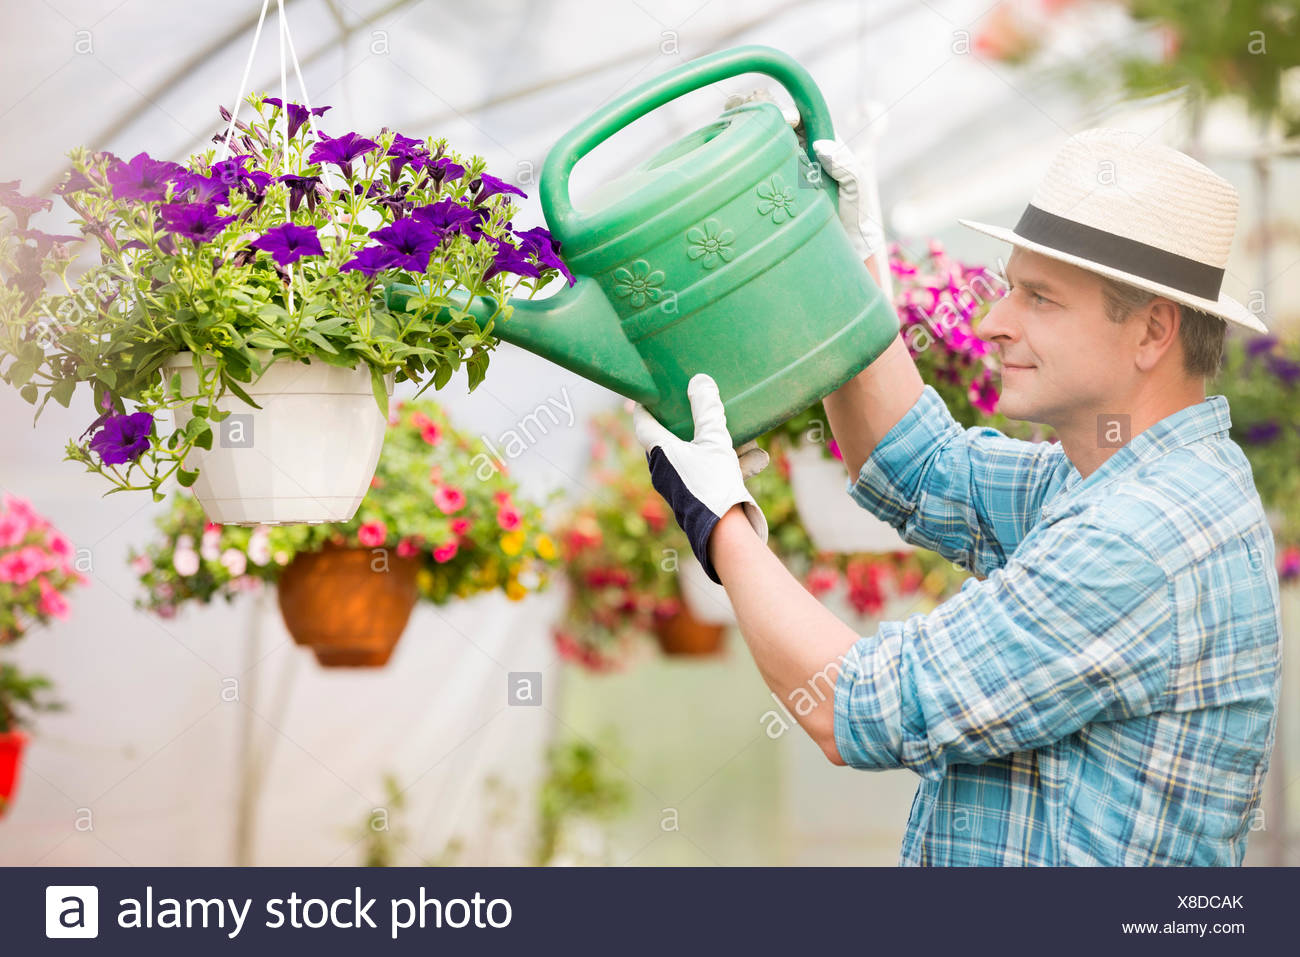 Side view of middle-aged man watering flower plants in greenhouse - Stock Image